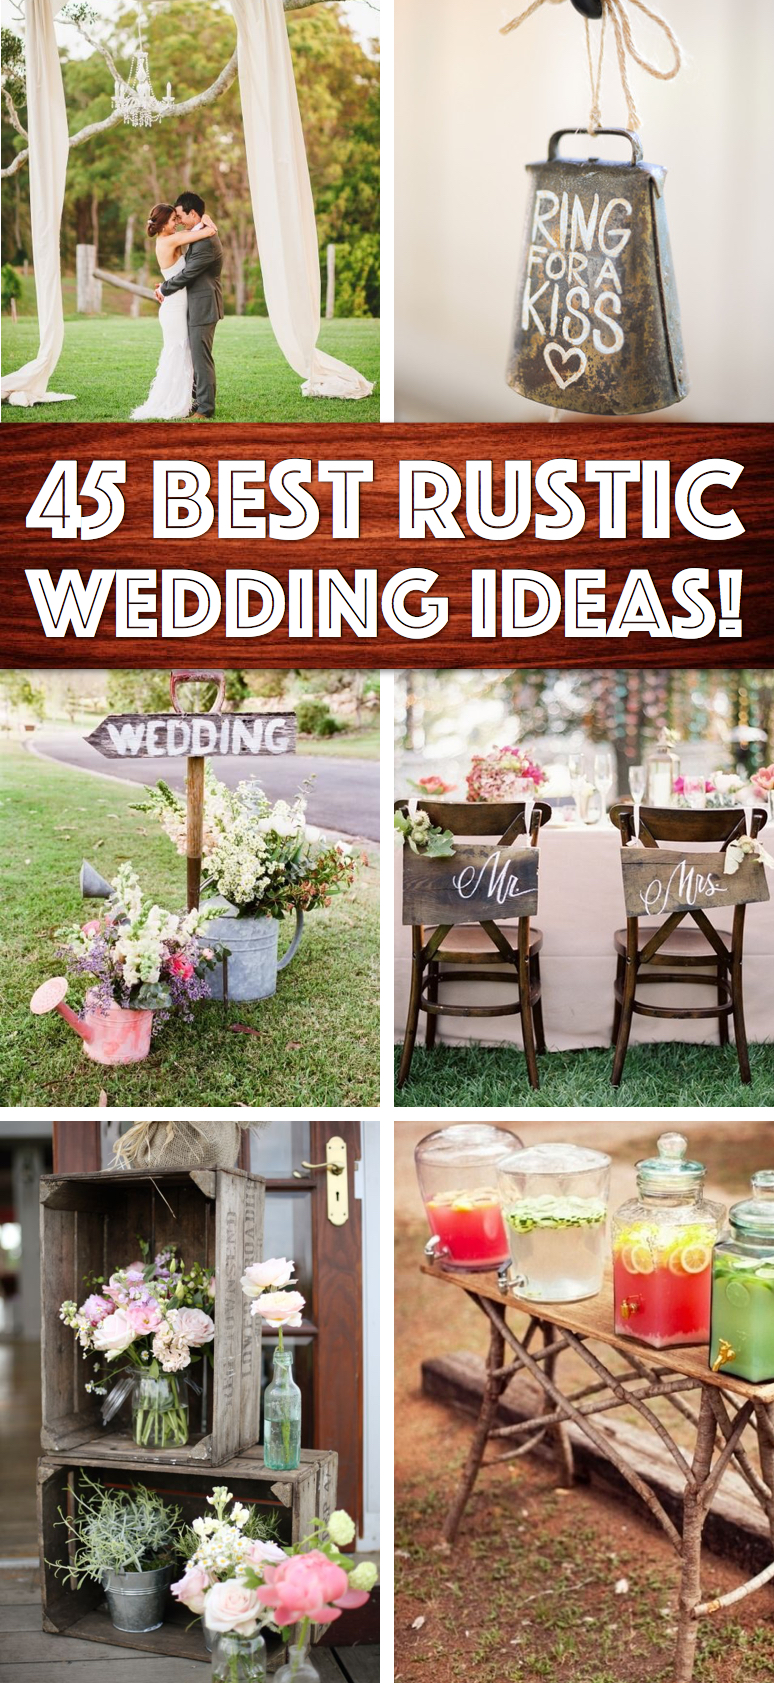 Shine on your wedding day with these breath taking rustic wedding shine on your wedding day with these breath taking rustic wedding ideas junglespirit Choice Image